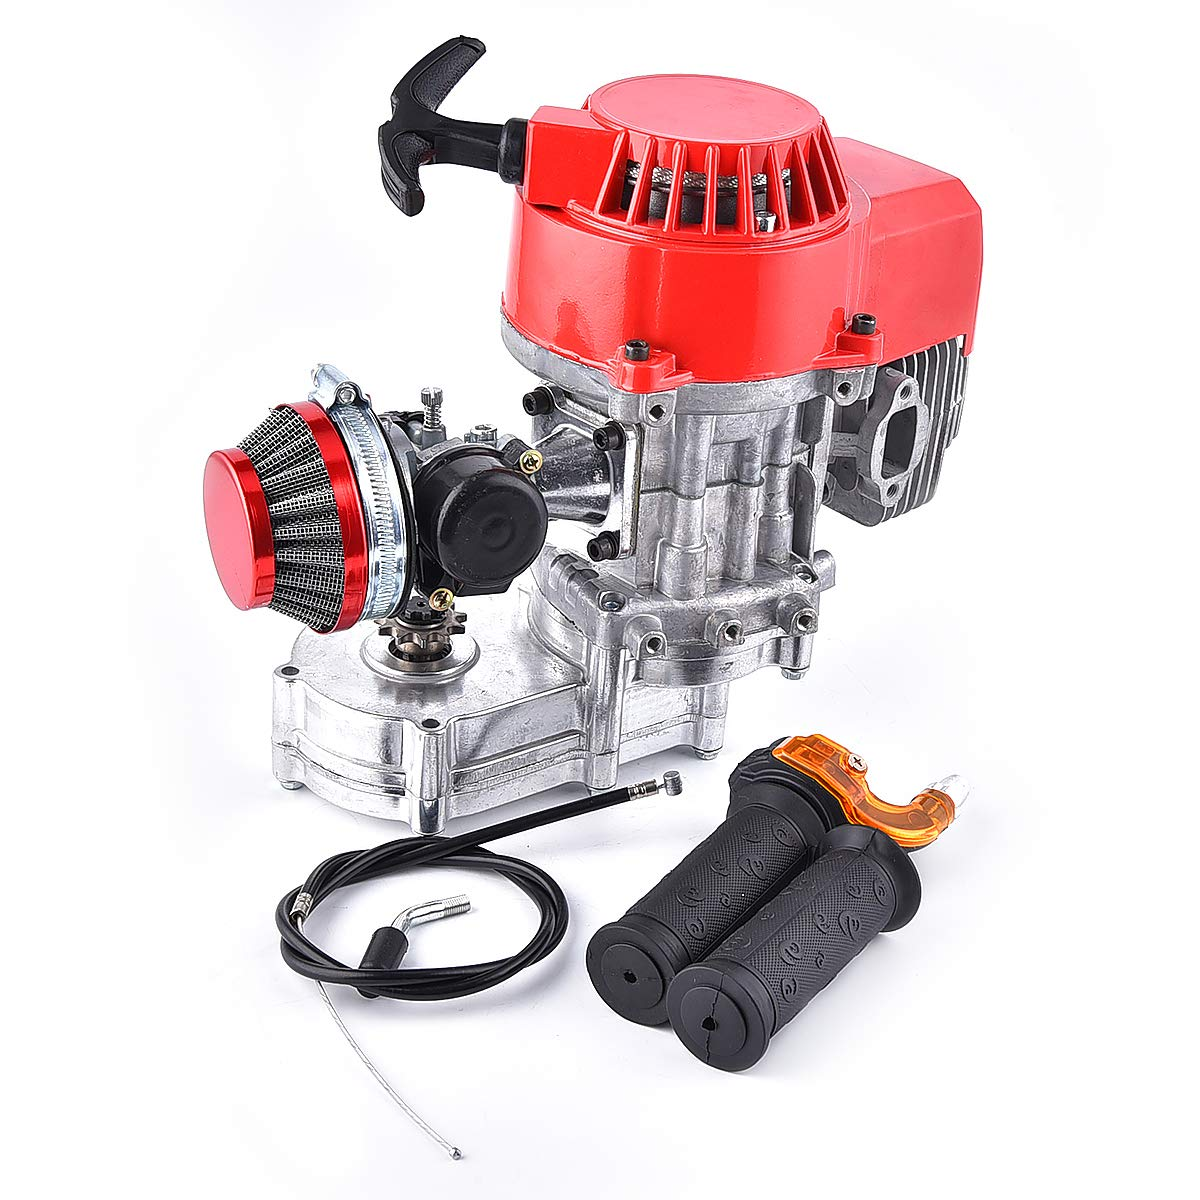 Throttle Cable Performance Motor 2-stroke Mini Dirt Bike ATV Engine with Gear Box 11T T8F Sprocket New Metal Recoil Engine 49cc 52cc Racing Air Filter Handle Bar